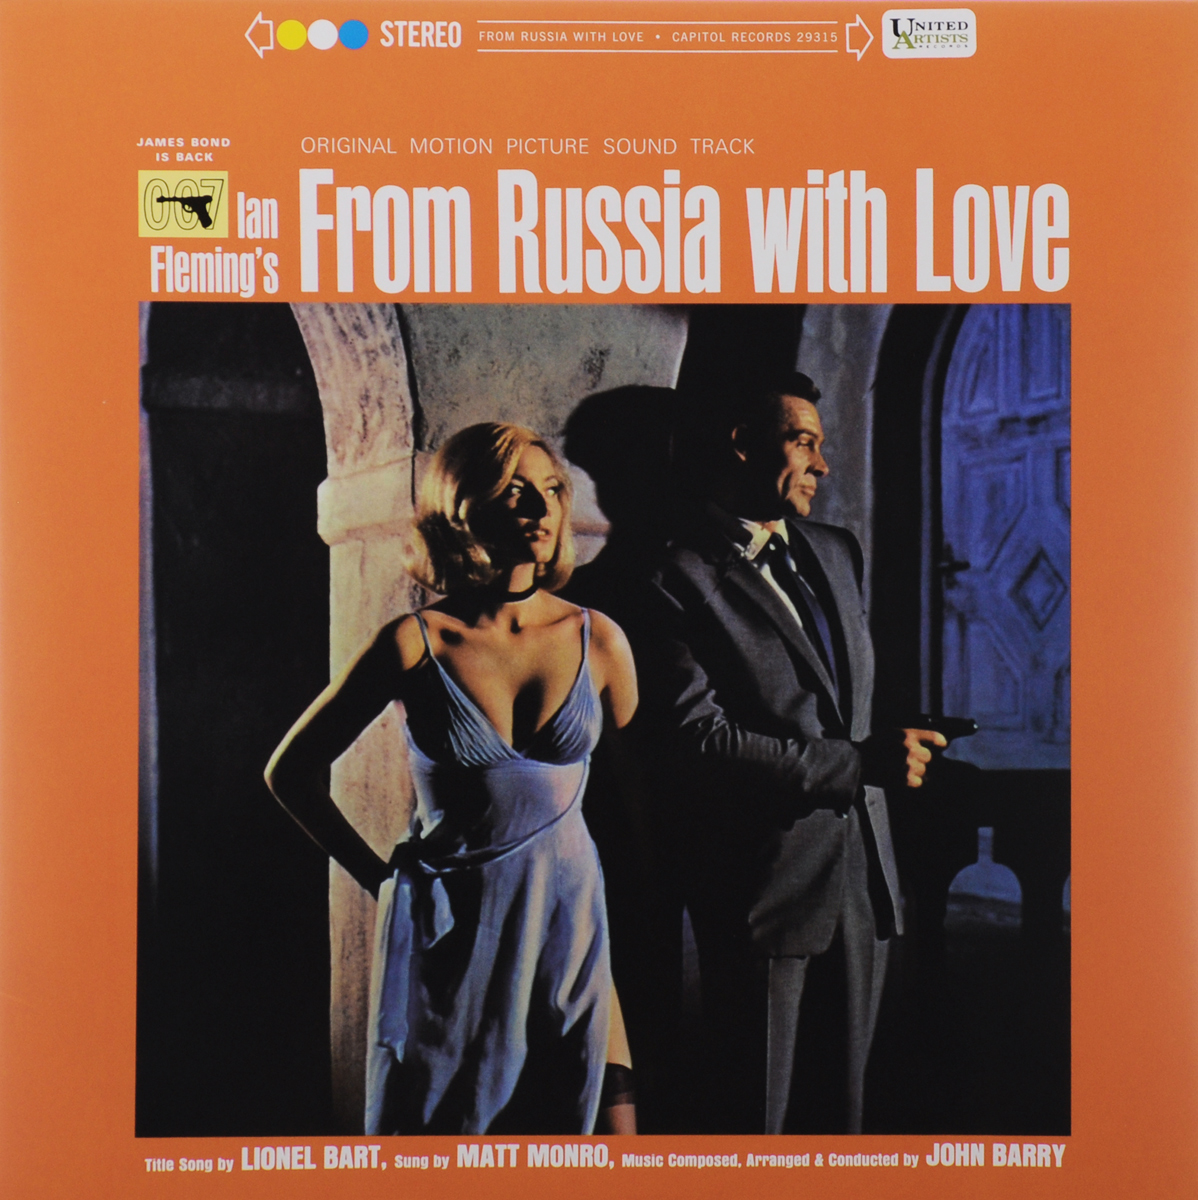 From Russia With Love. Original Motion Picture Sound Track (LP) 8 mile music from and inspired by the motion picture 2 lp